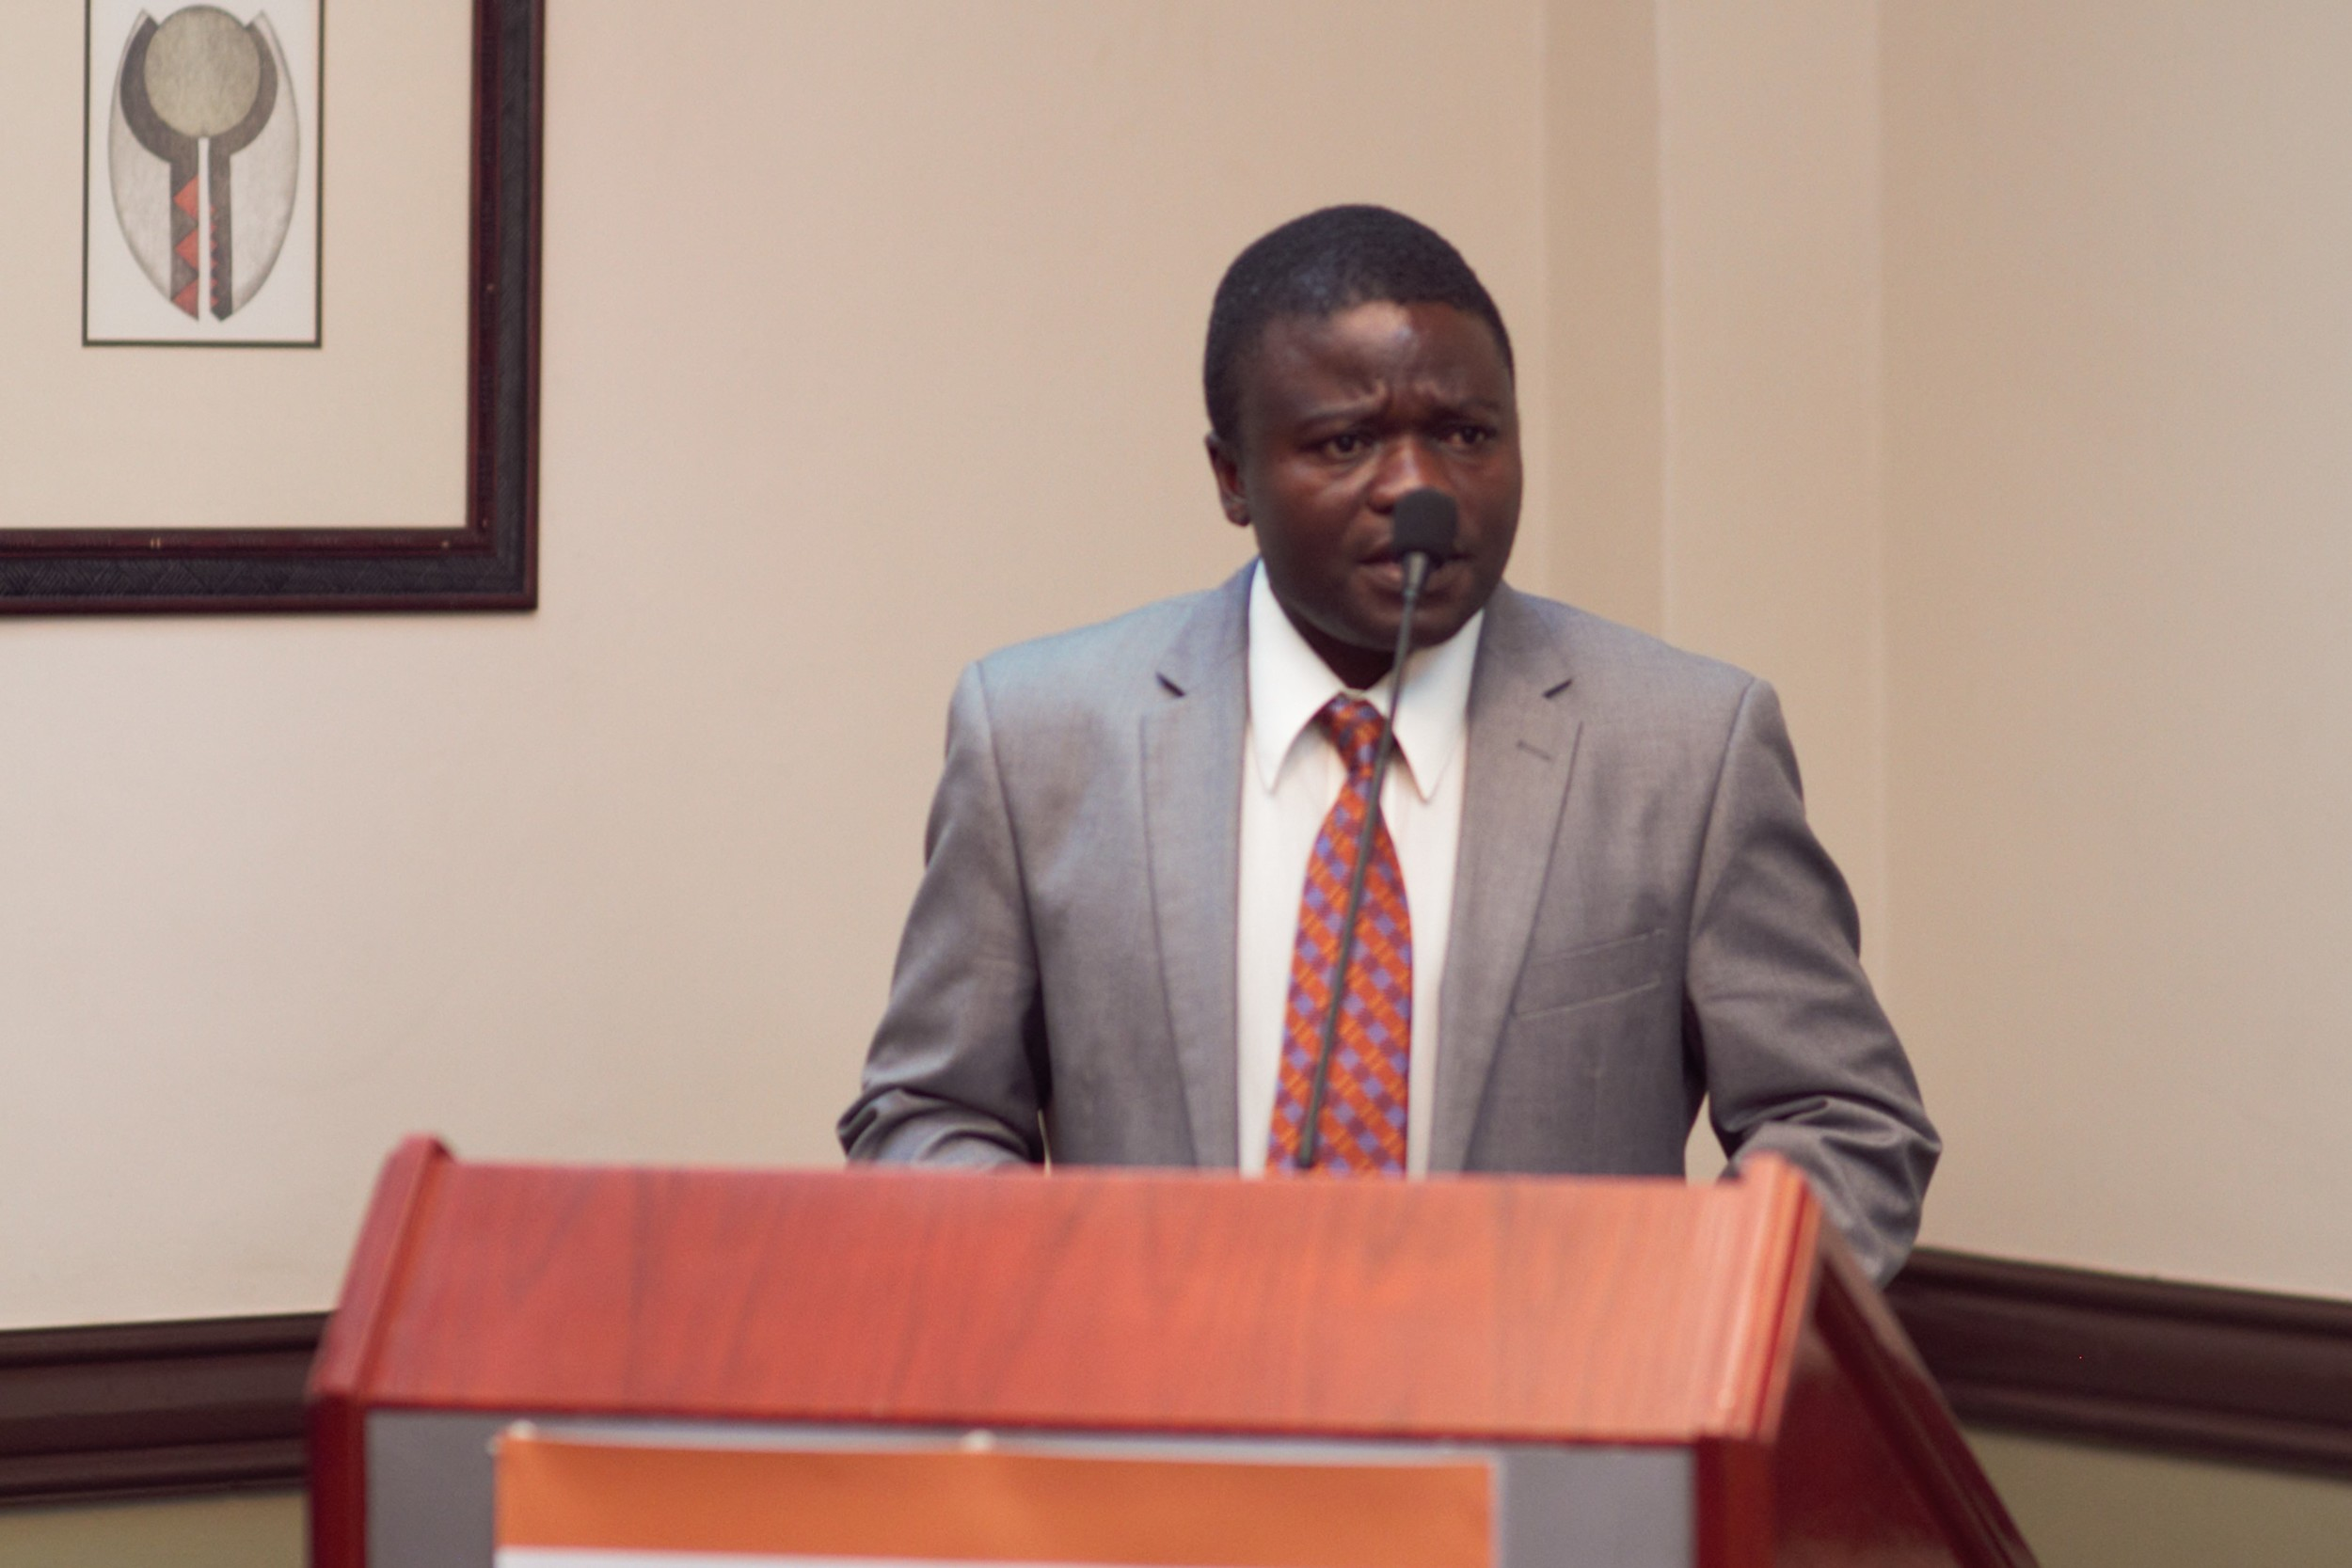 Hon. Dr. Peter Kumpalume, Minister of Health, Malawi